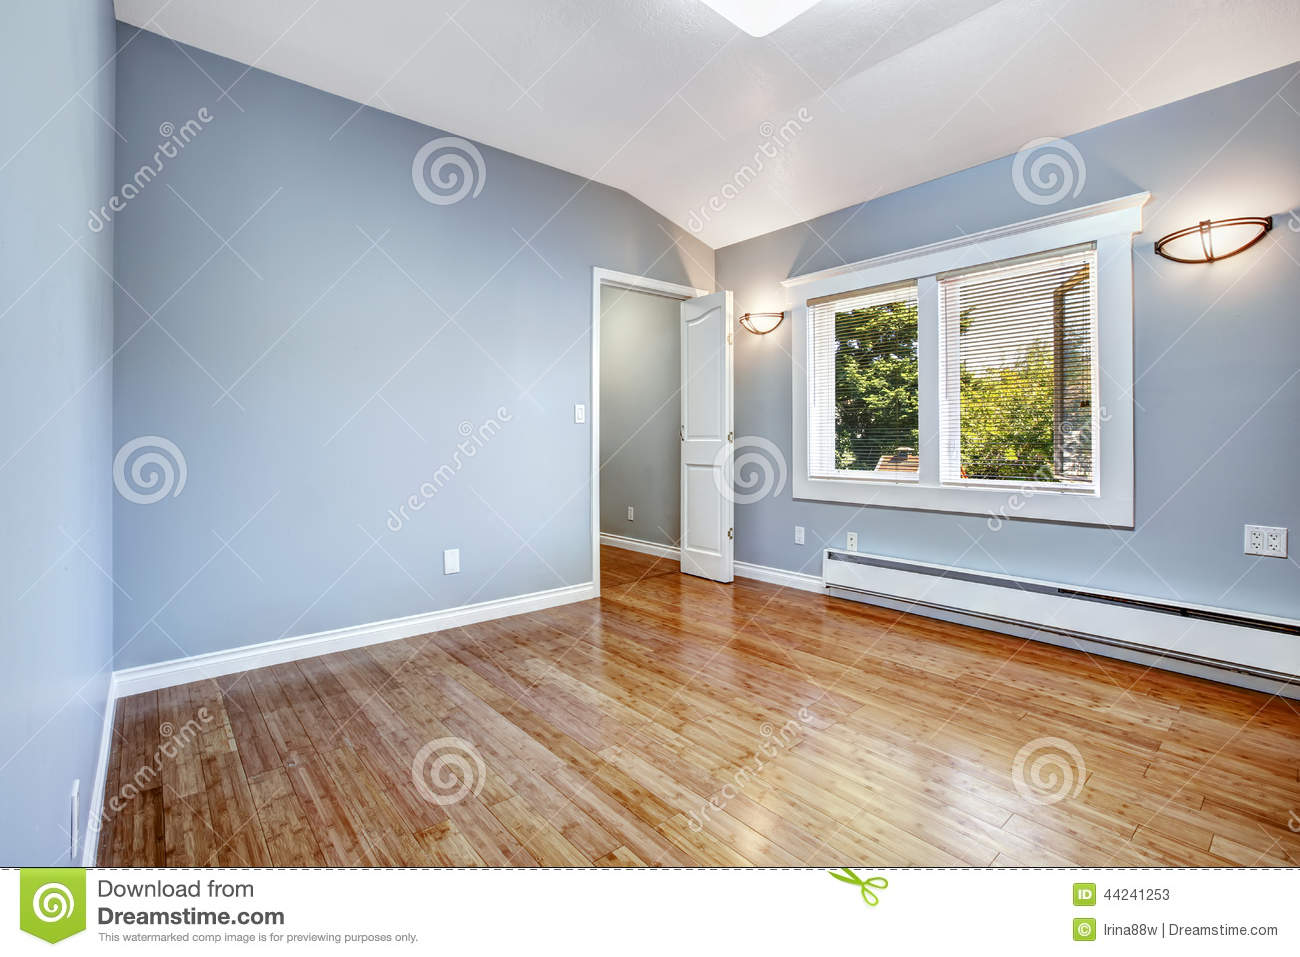 Empty Bedroom With Light Blue Walls Stock Photo - Image: 44241253